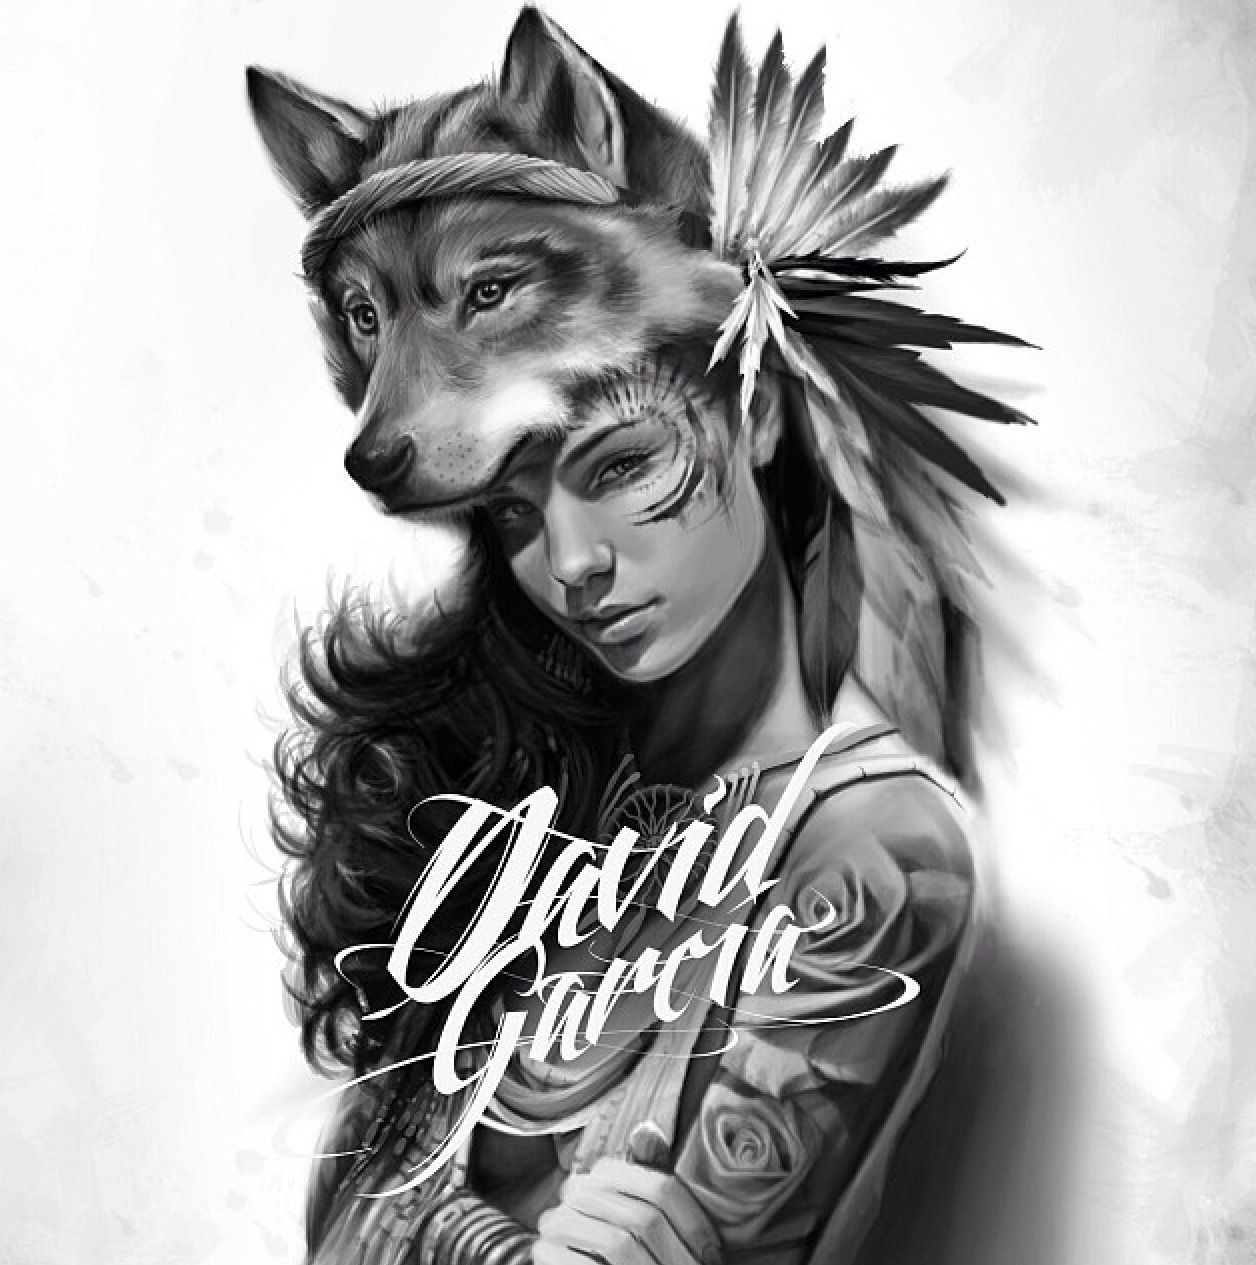 pin by bleu beauty on david garcia pinterest tattoos wolf tattoos and tattoo designs